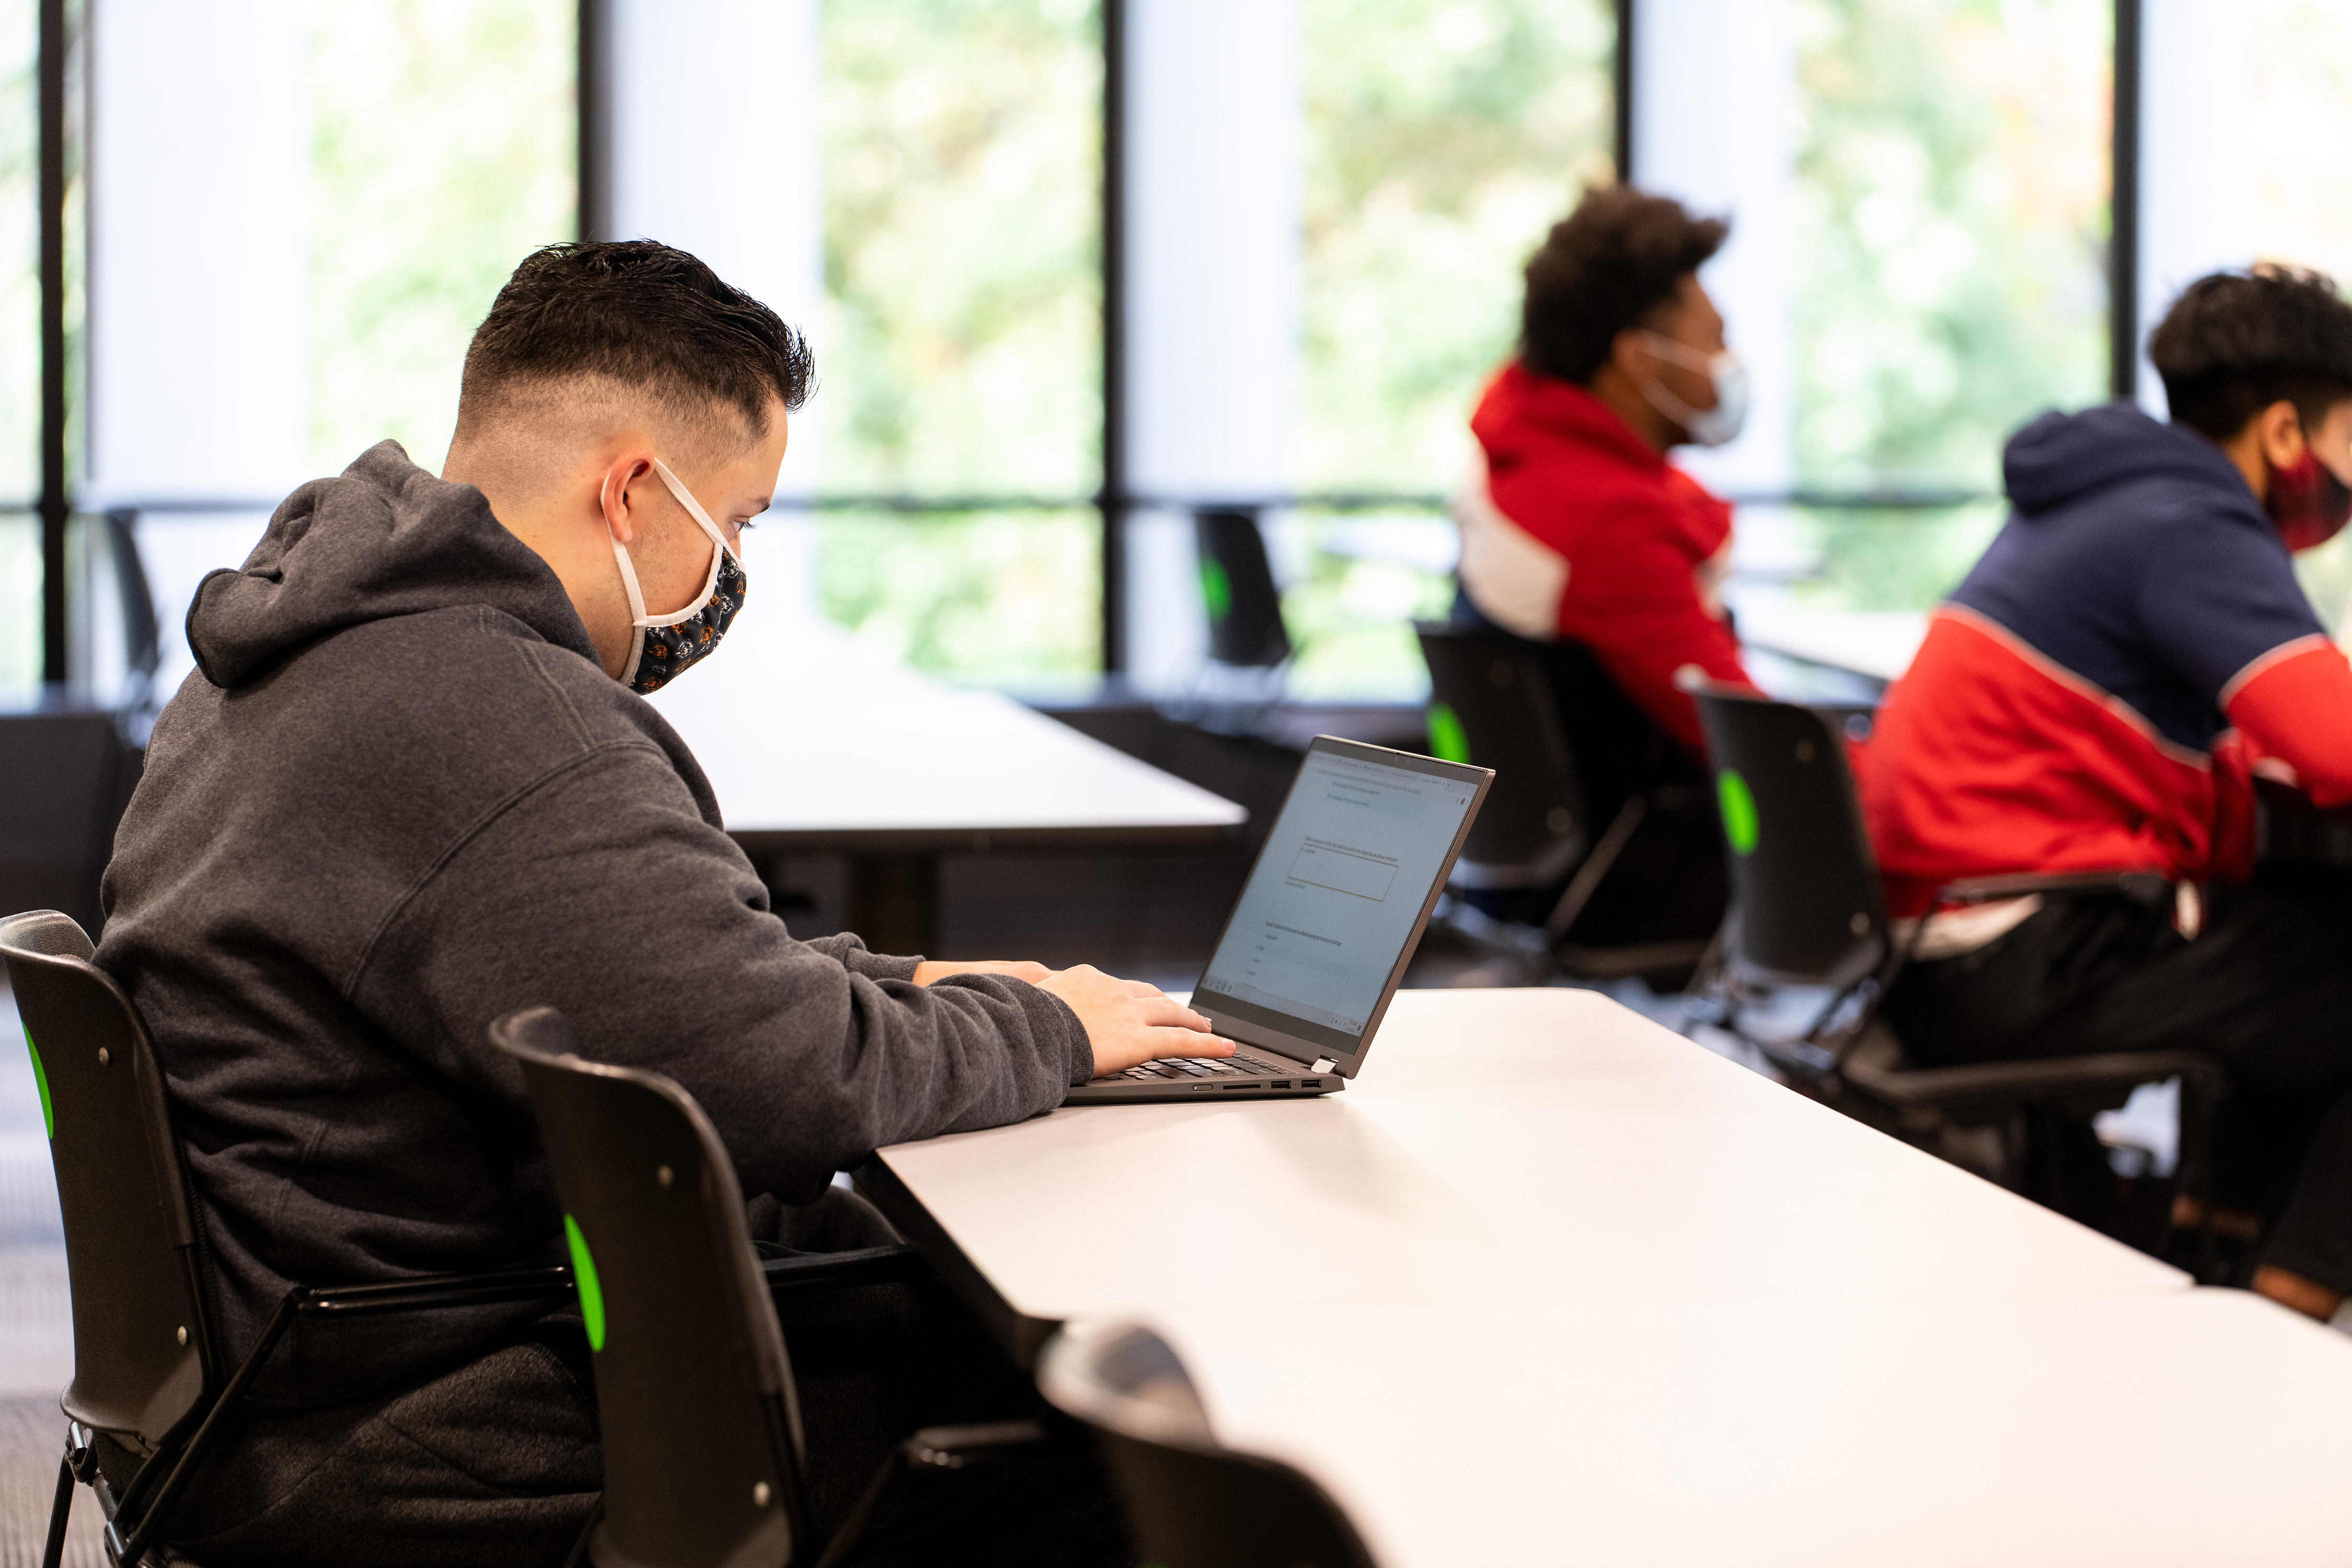 Community colleges will be the main beneficiaries of another $225 million in relief funding targeted towards supporting public and non-profit institutions that have been left with the greatest unmet needs in the wake of the pandemic.